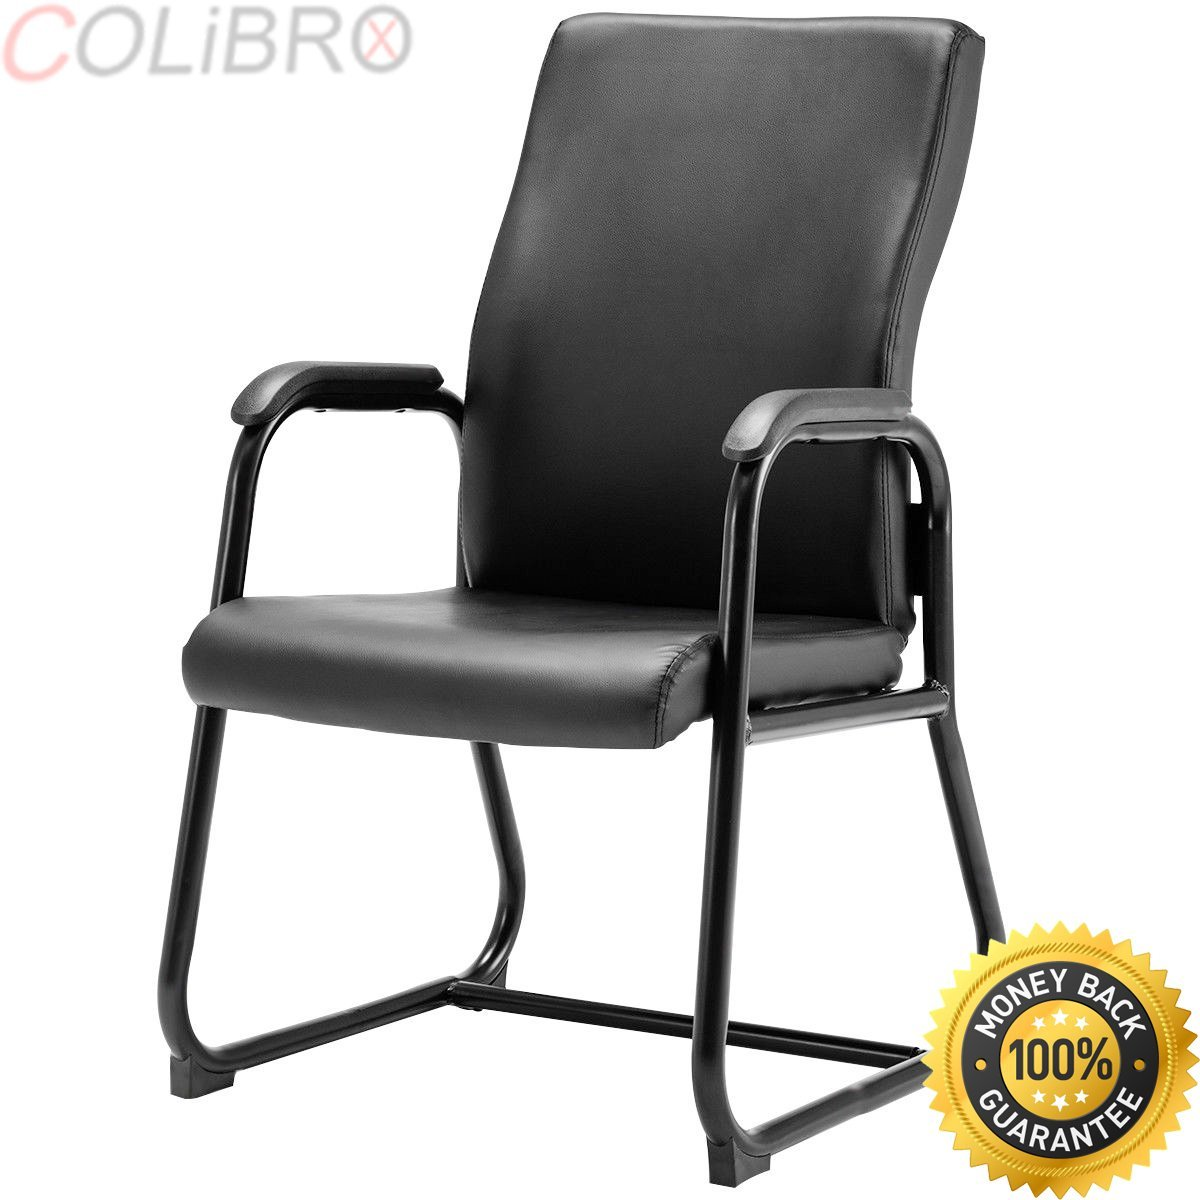 Cheap Office Guest Chairs Leather Find Office Guest Chairs Leather Deals On Line At Alibaba Com